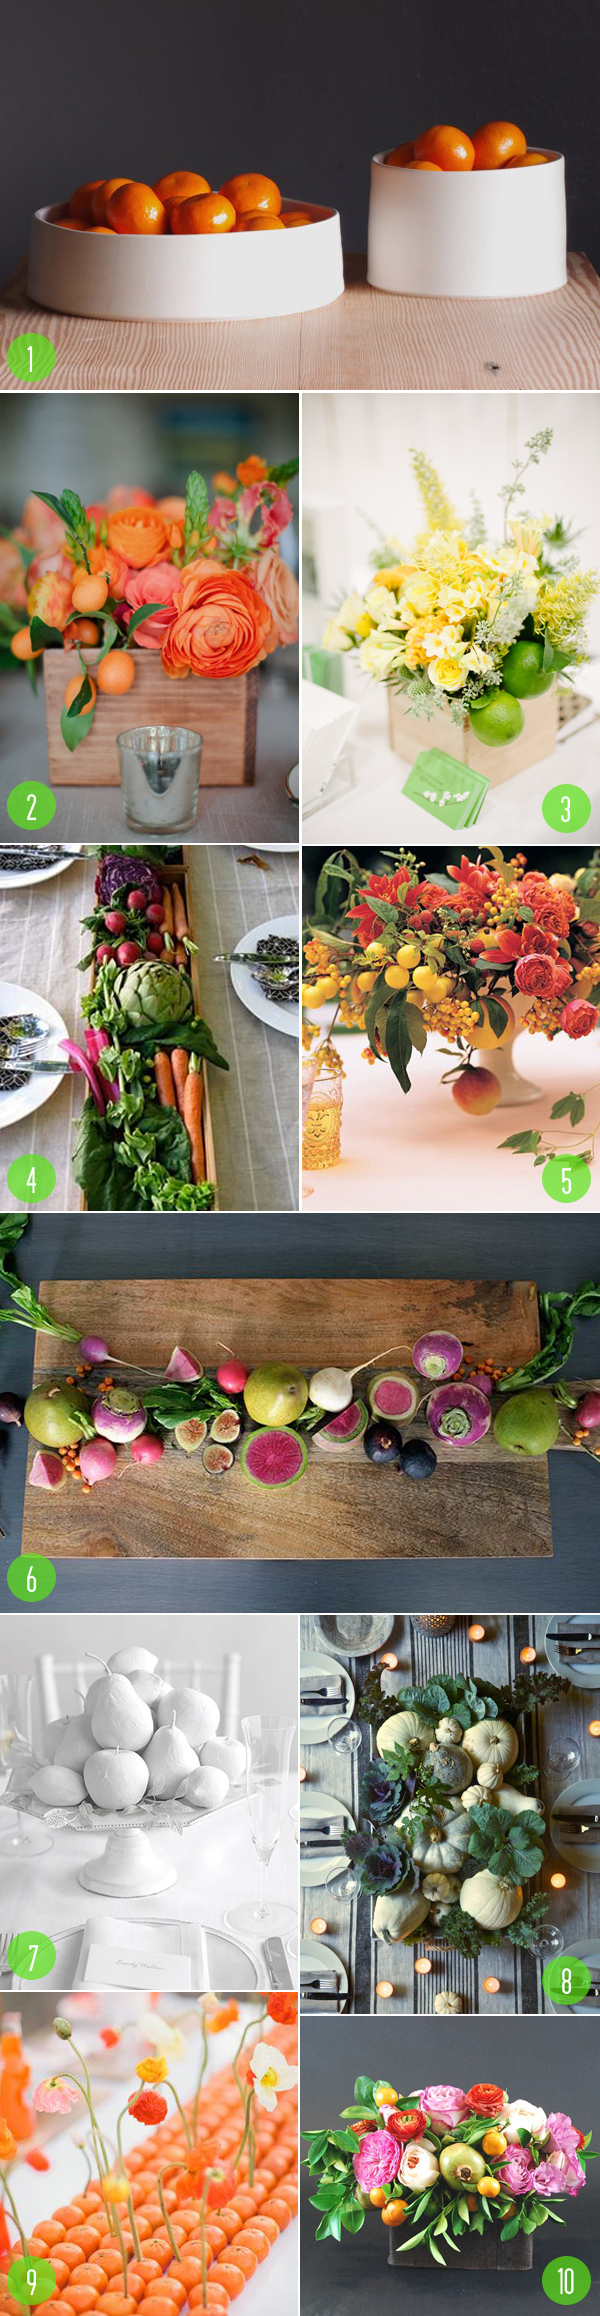 top 10: fruit veggie centerpieces